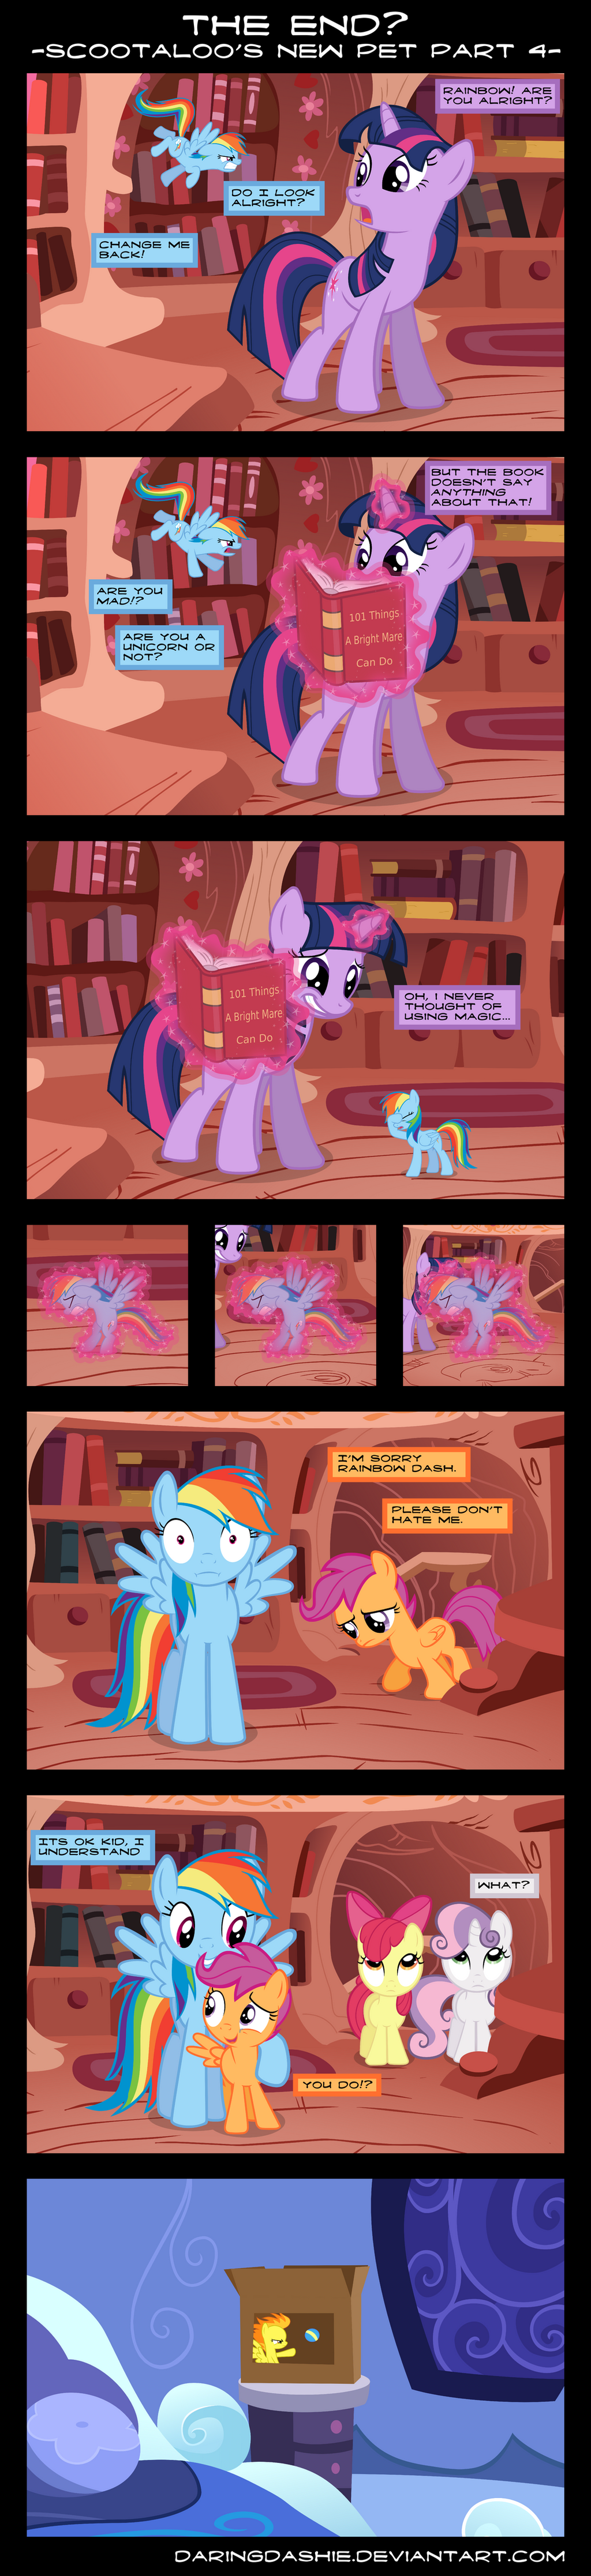 The End? - Scootaloo's New Pet Part 4 by DaringDashie